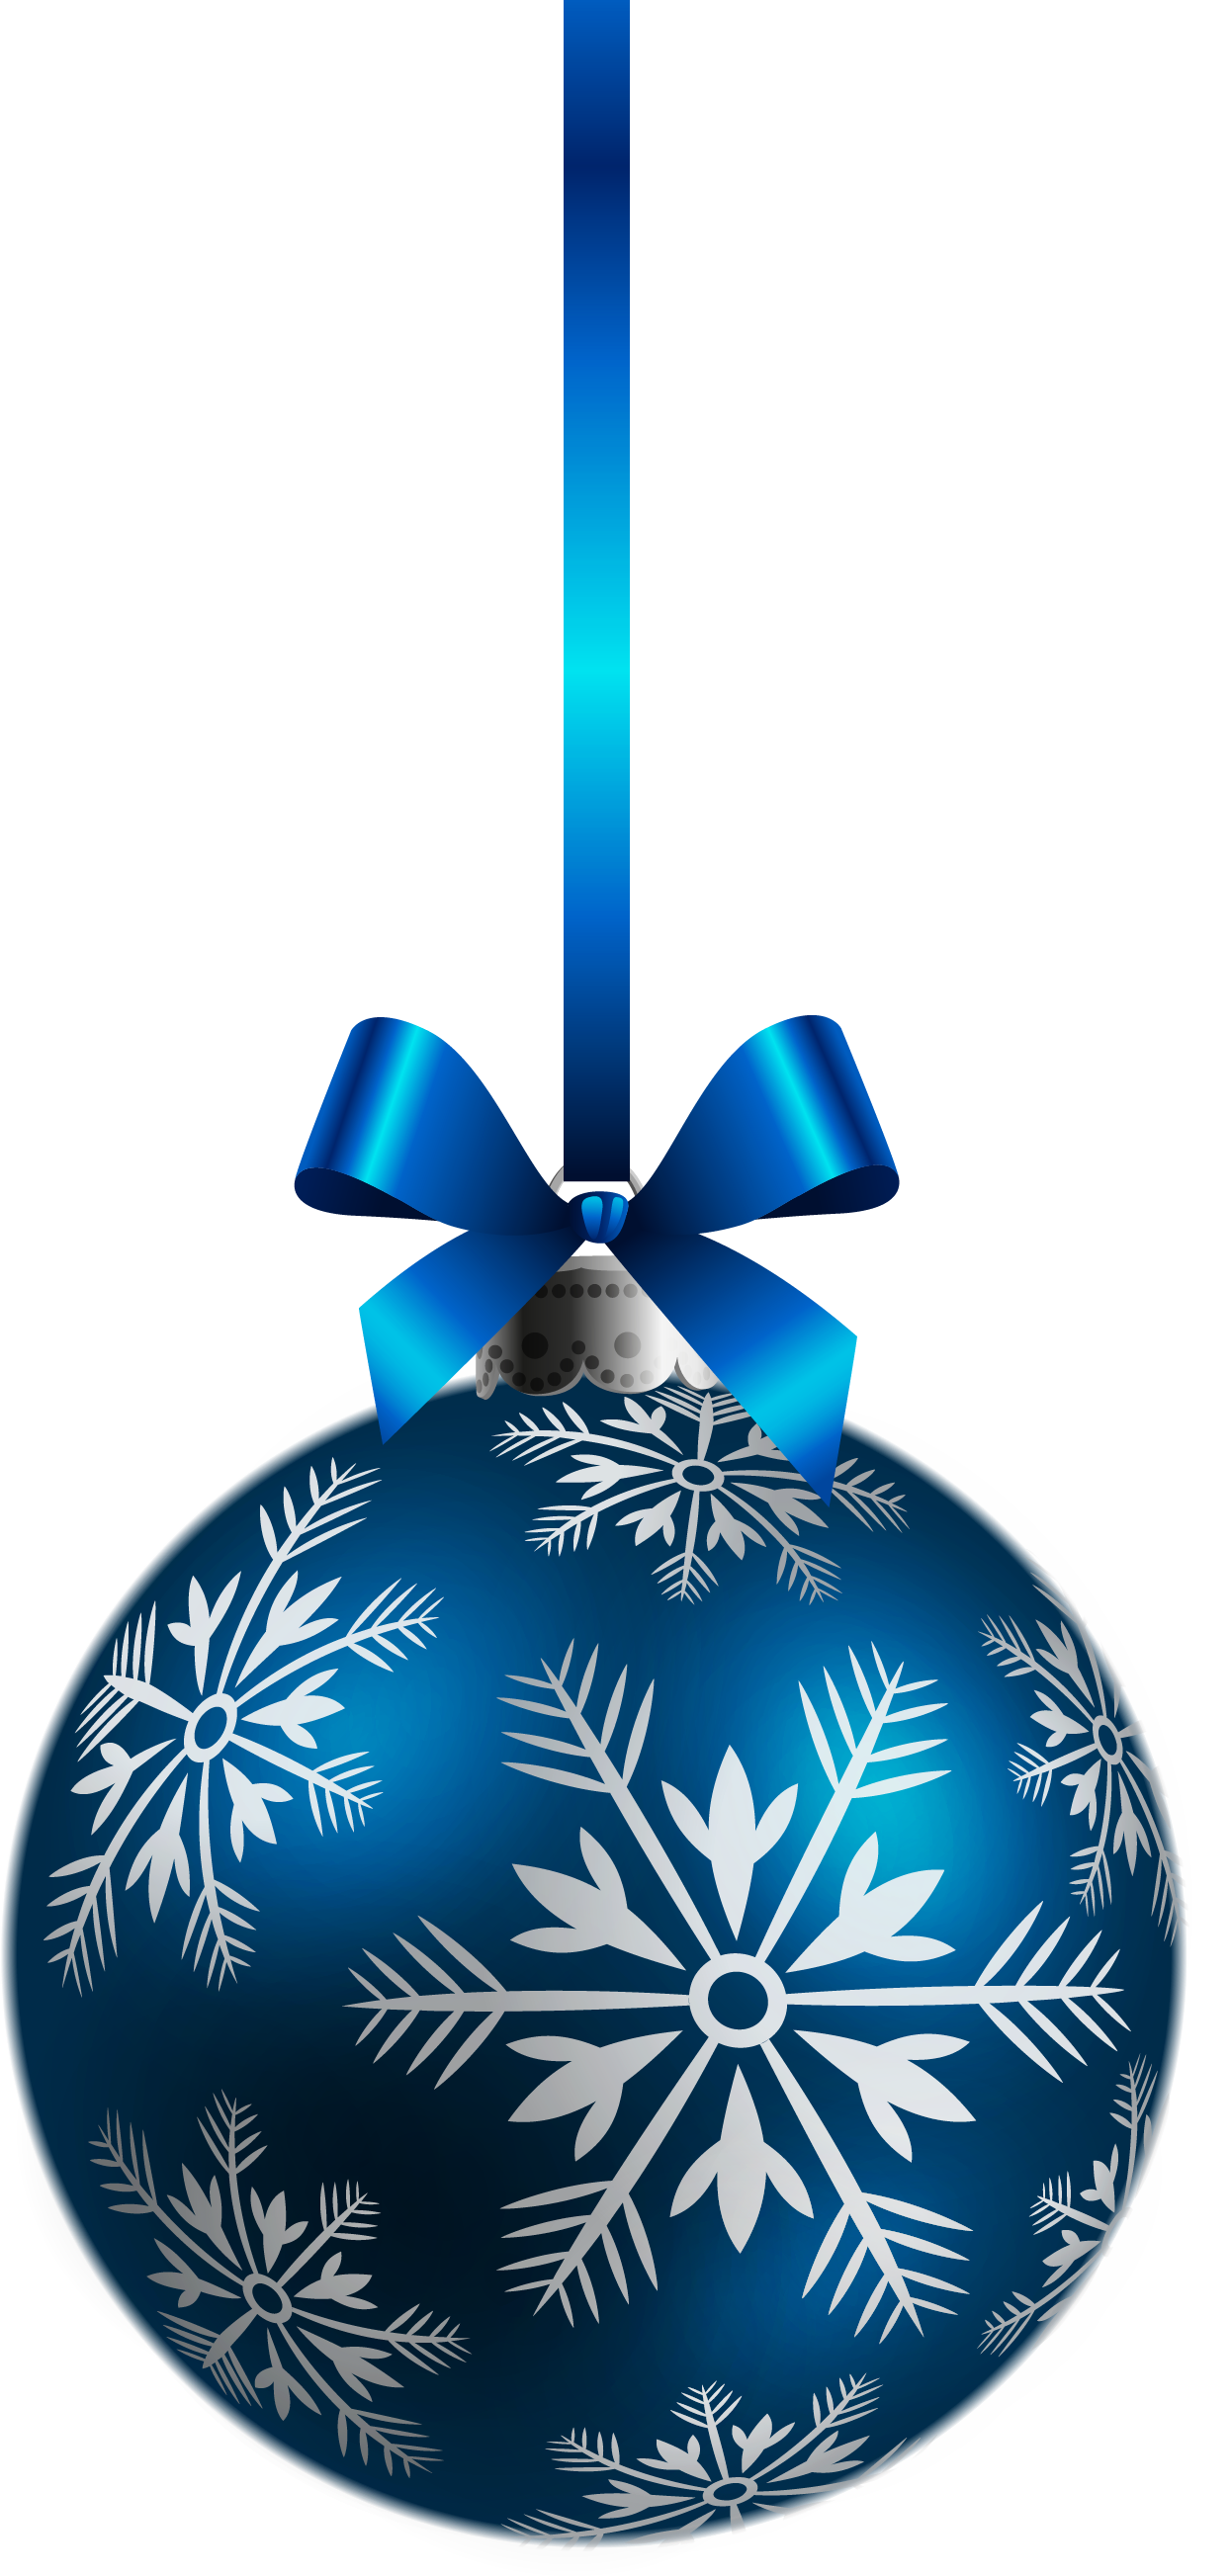 Blue snowflake free banner clipart picture black and white stock Large Transparent Blue Christmas Ball Ornament PNG Clipart ... picture black and white stock